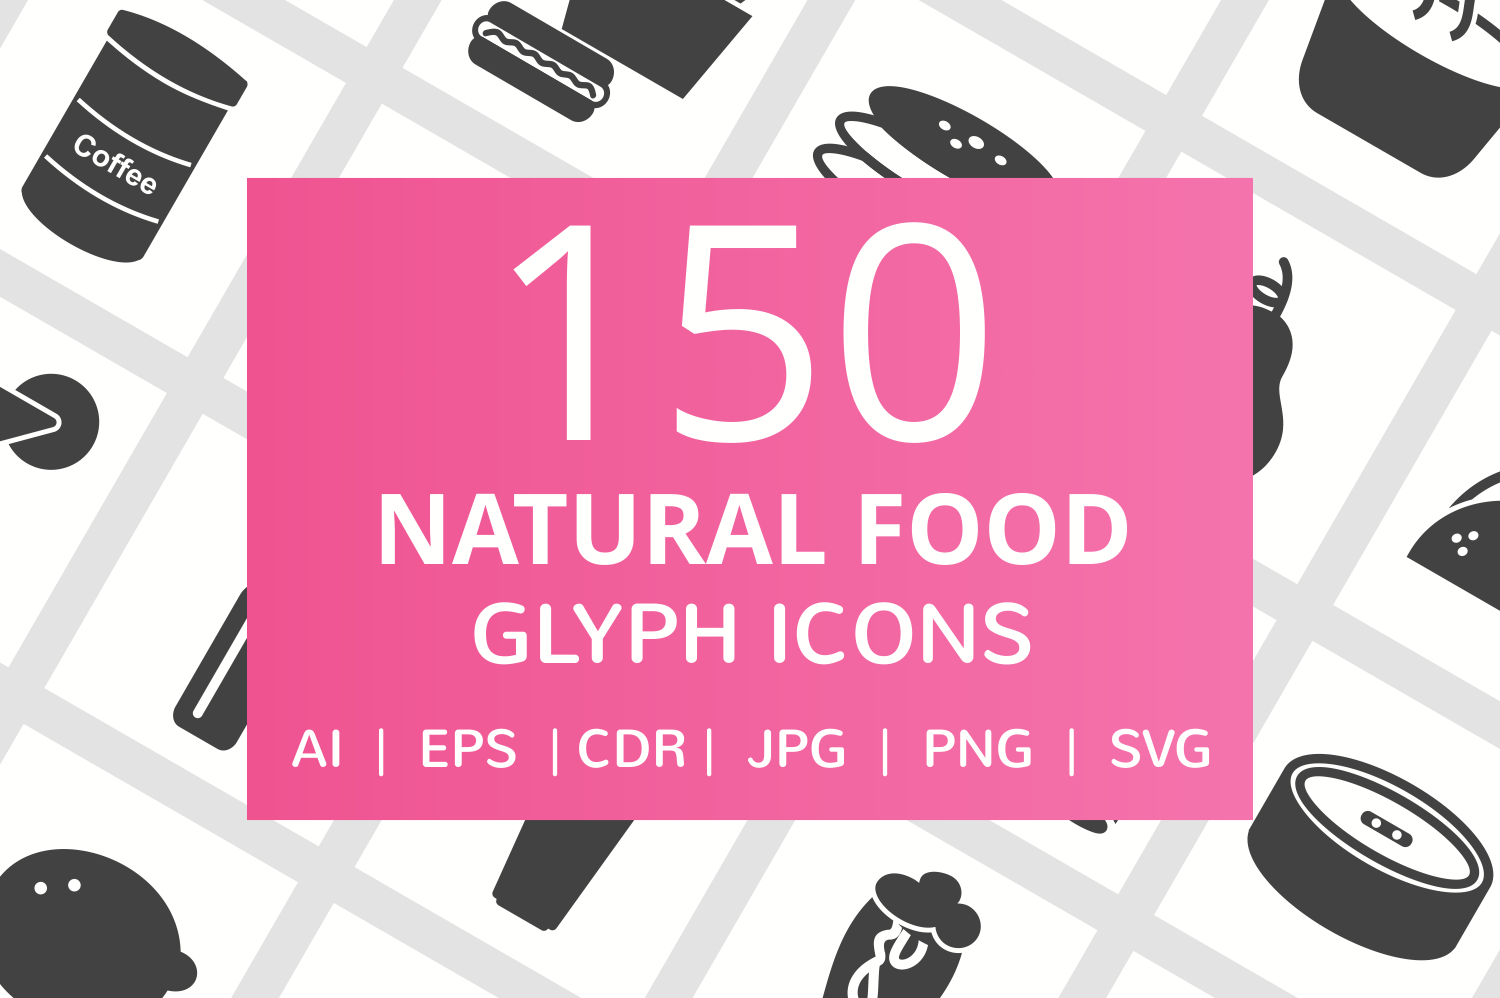 150 Natural Food Glyph Icons example image 1